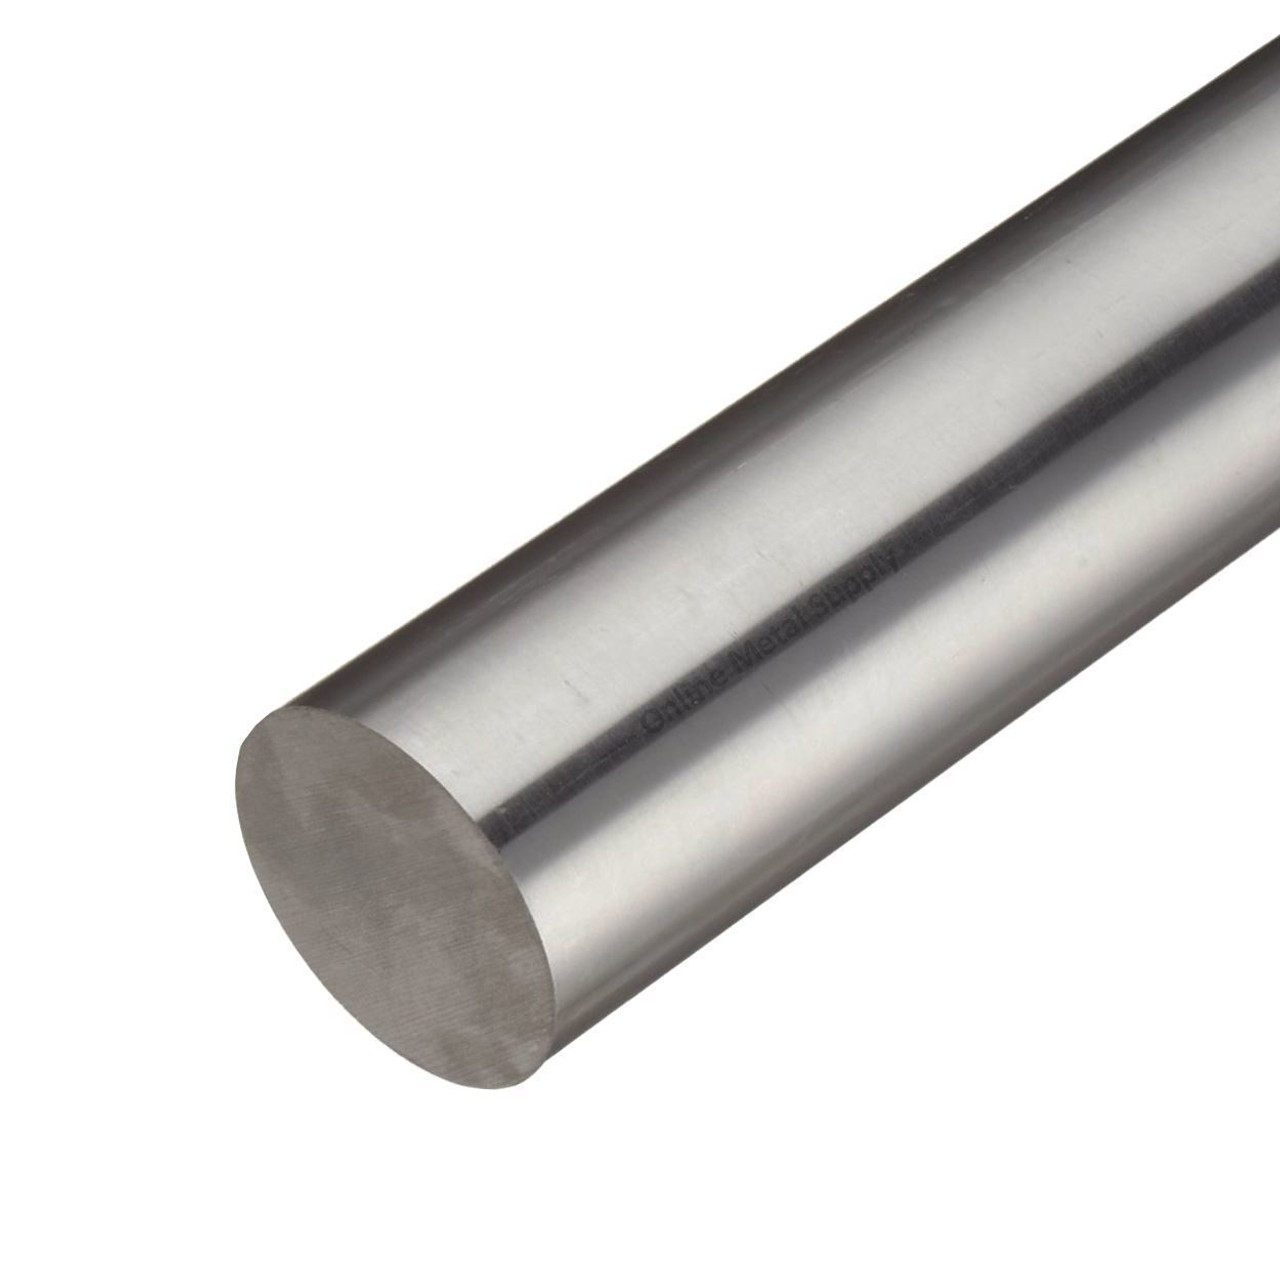 416 Stainless Steel Round Rod, 3.000 (3 inch) x 6 inches